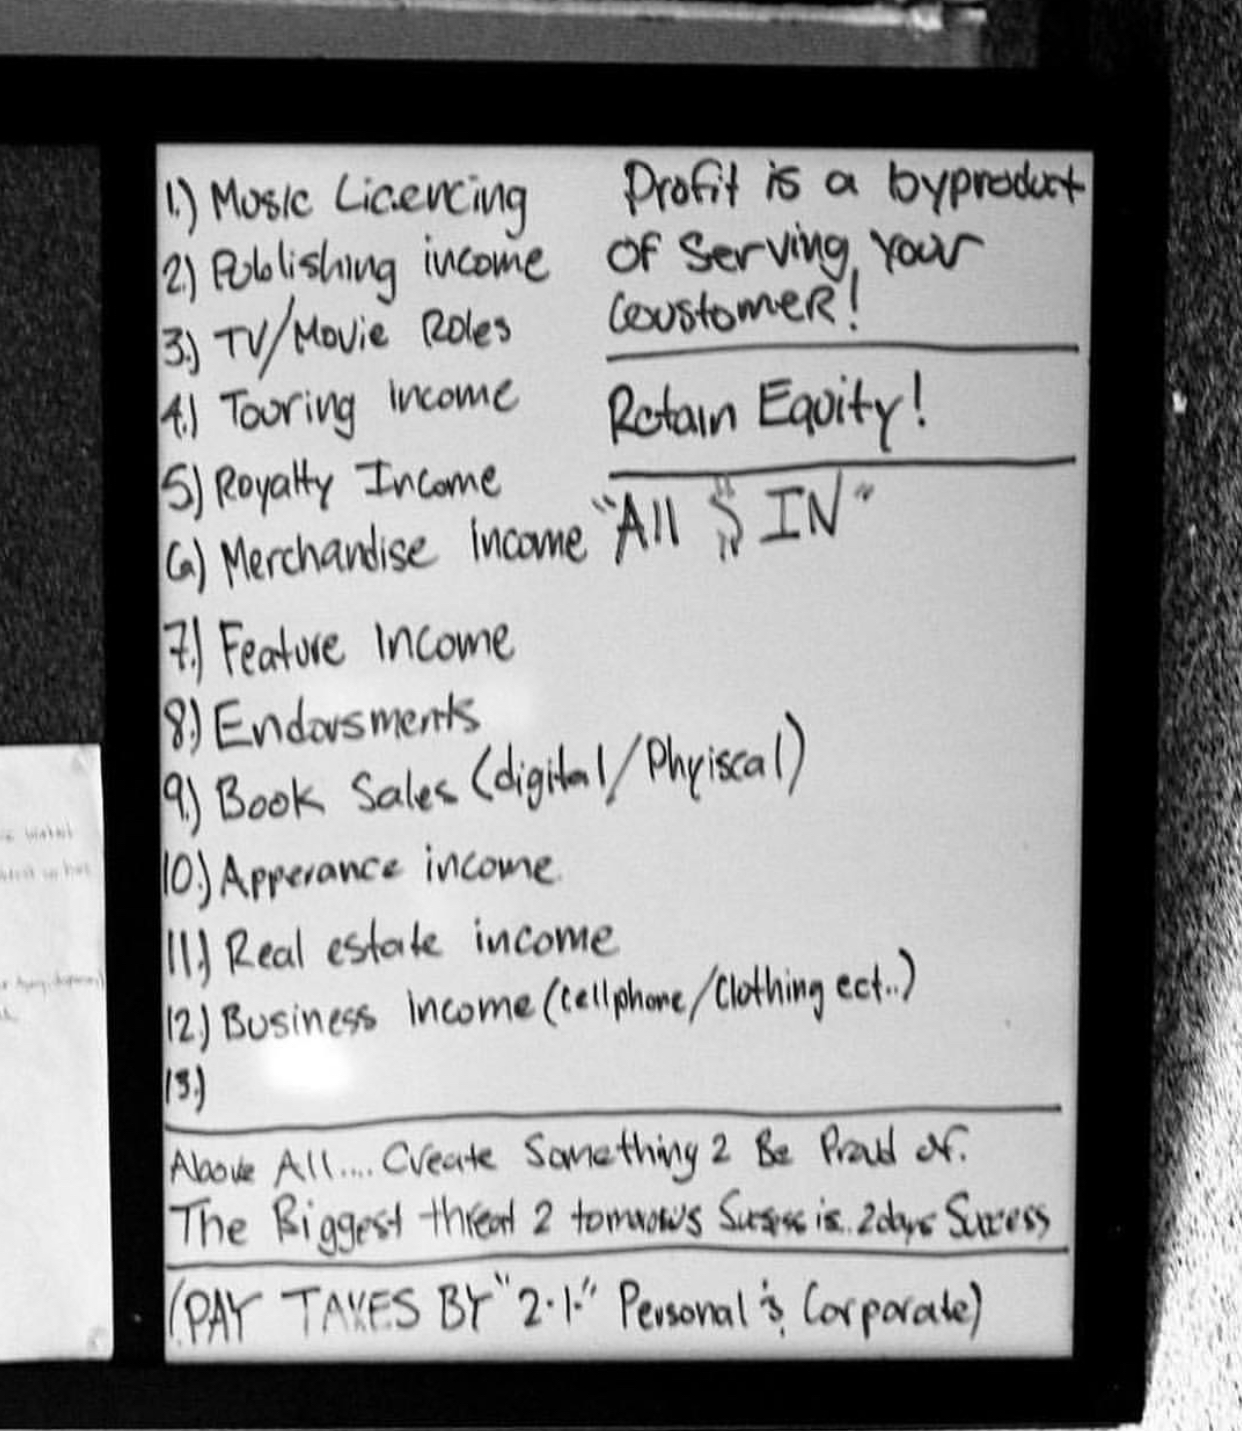 A picture of Nipsey Hussle's whiteboard.